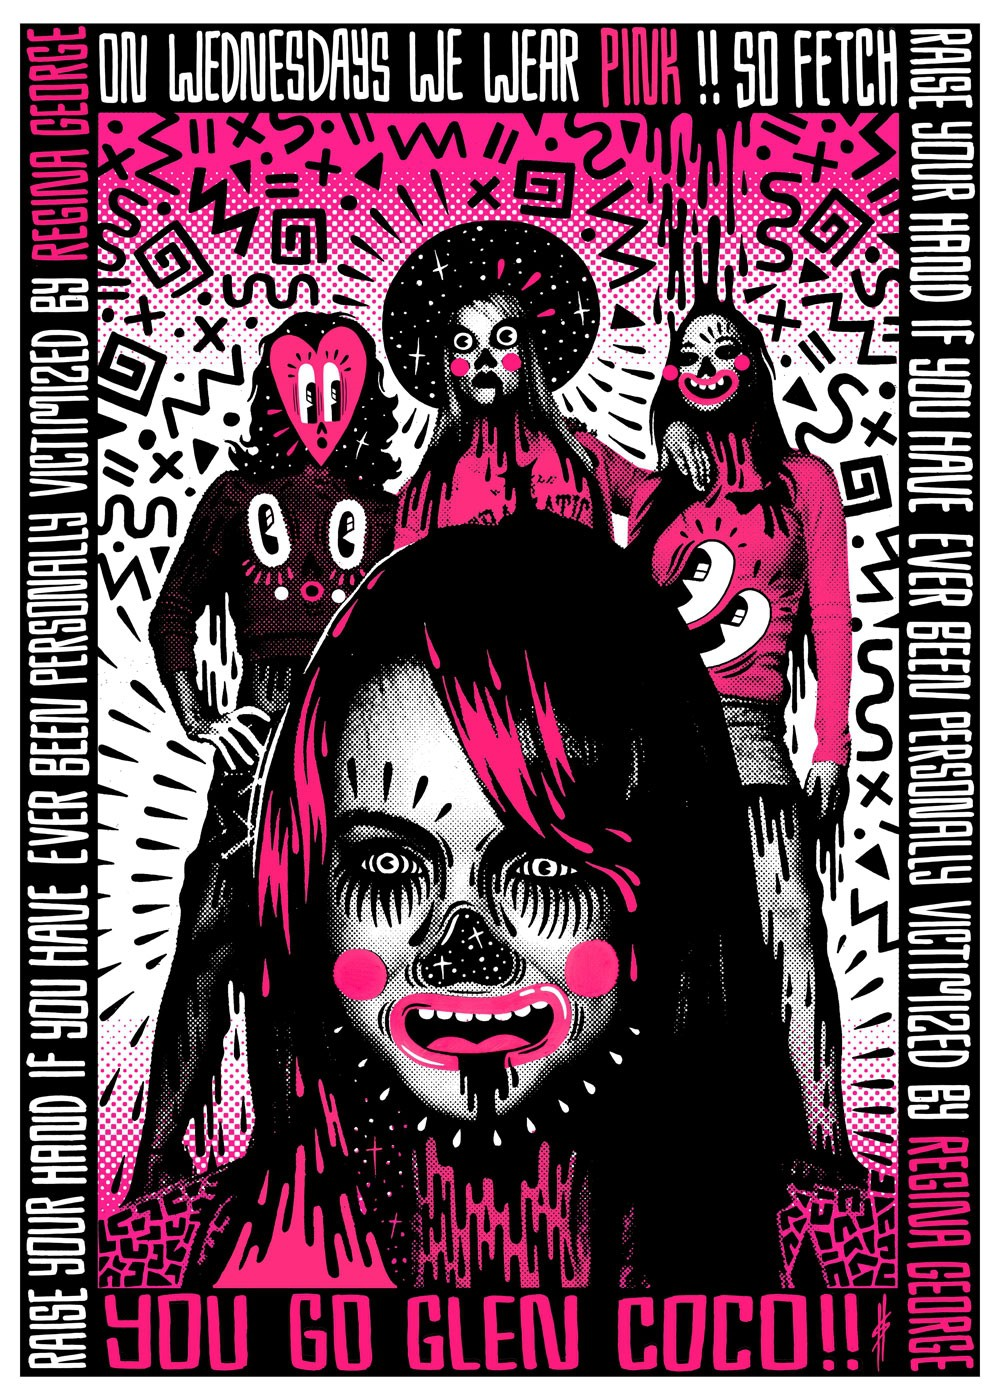 Print Club London makes limited edition prints for the Film4